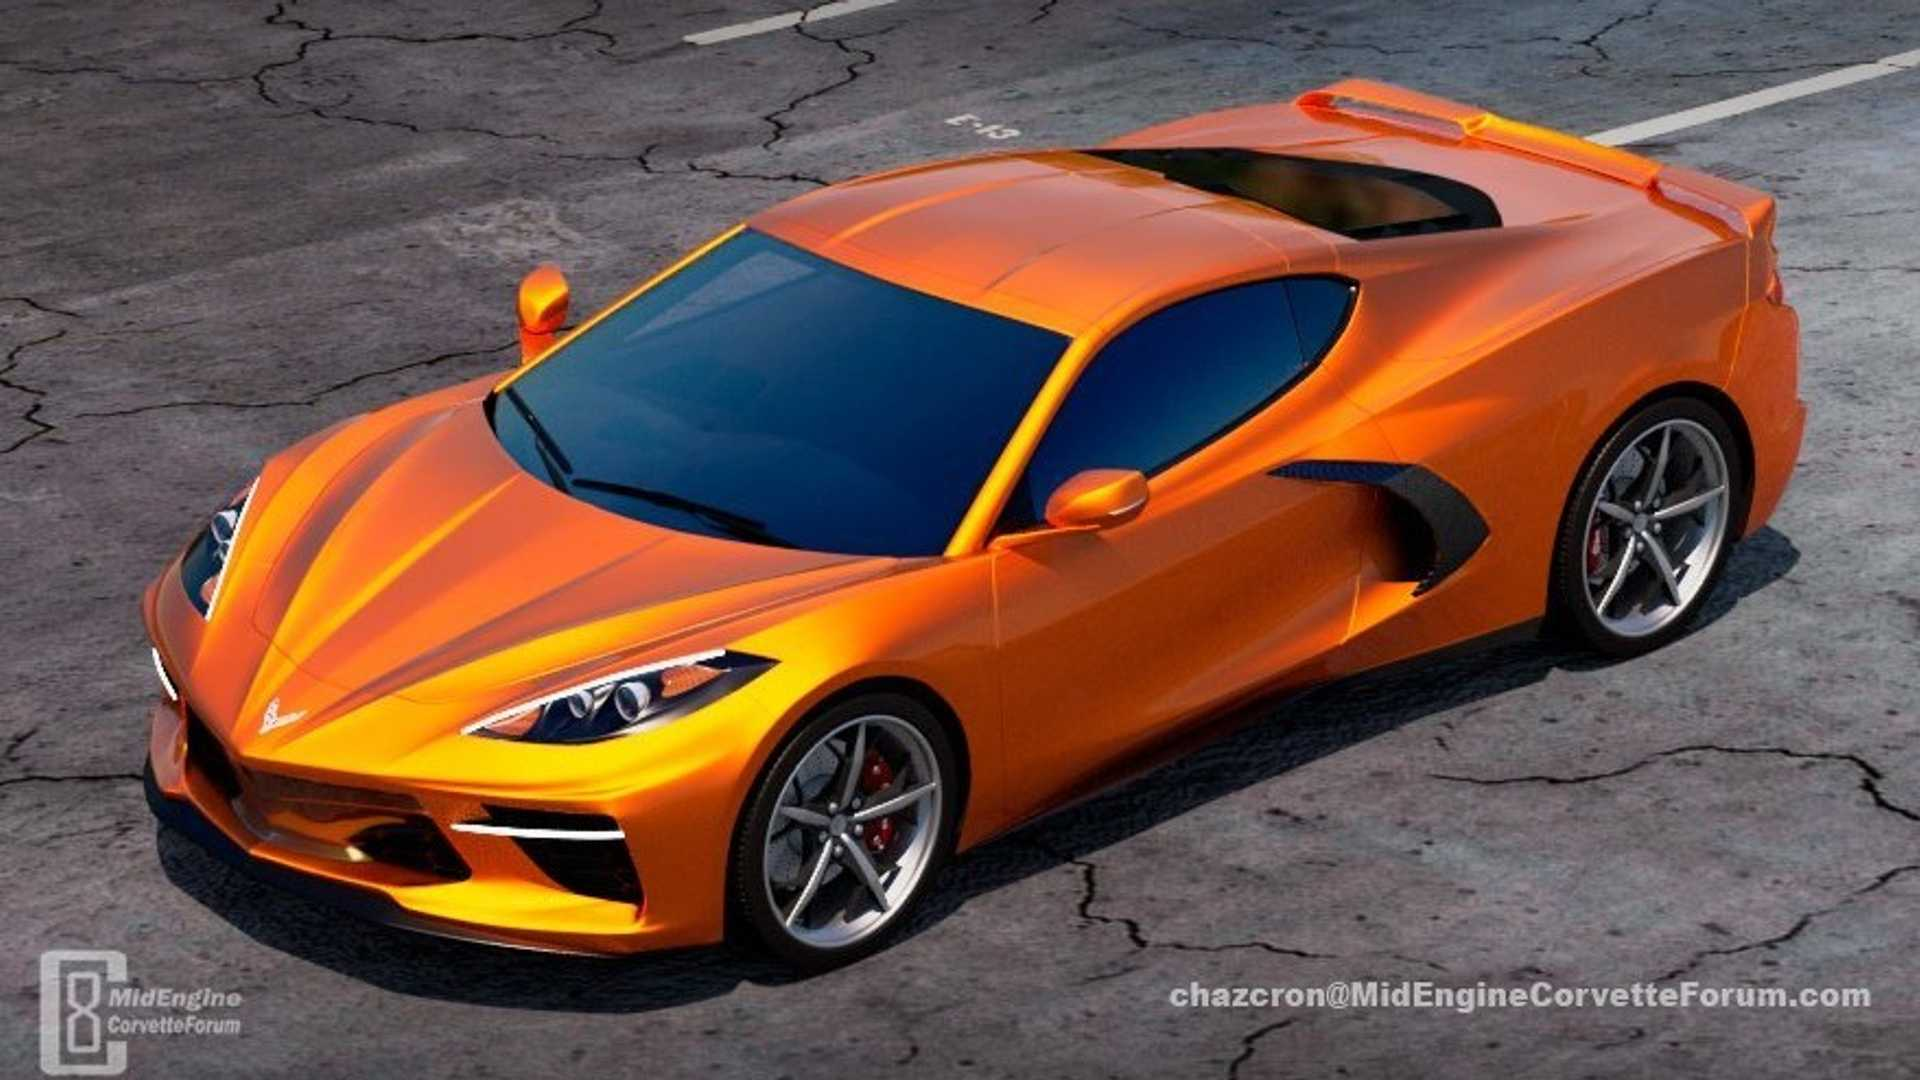 2020 Corvette Color Chart.Mid Engine Corvette Colors Options Reportedly Leak